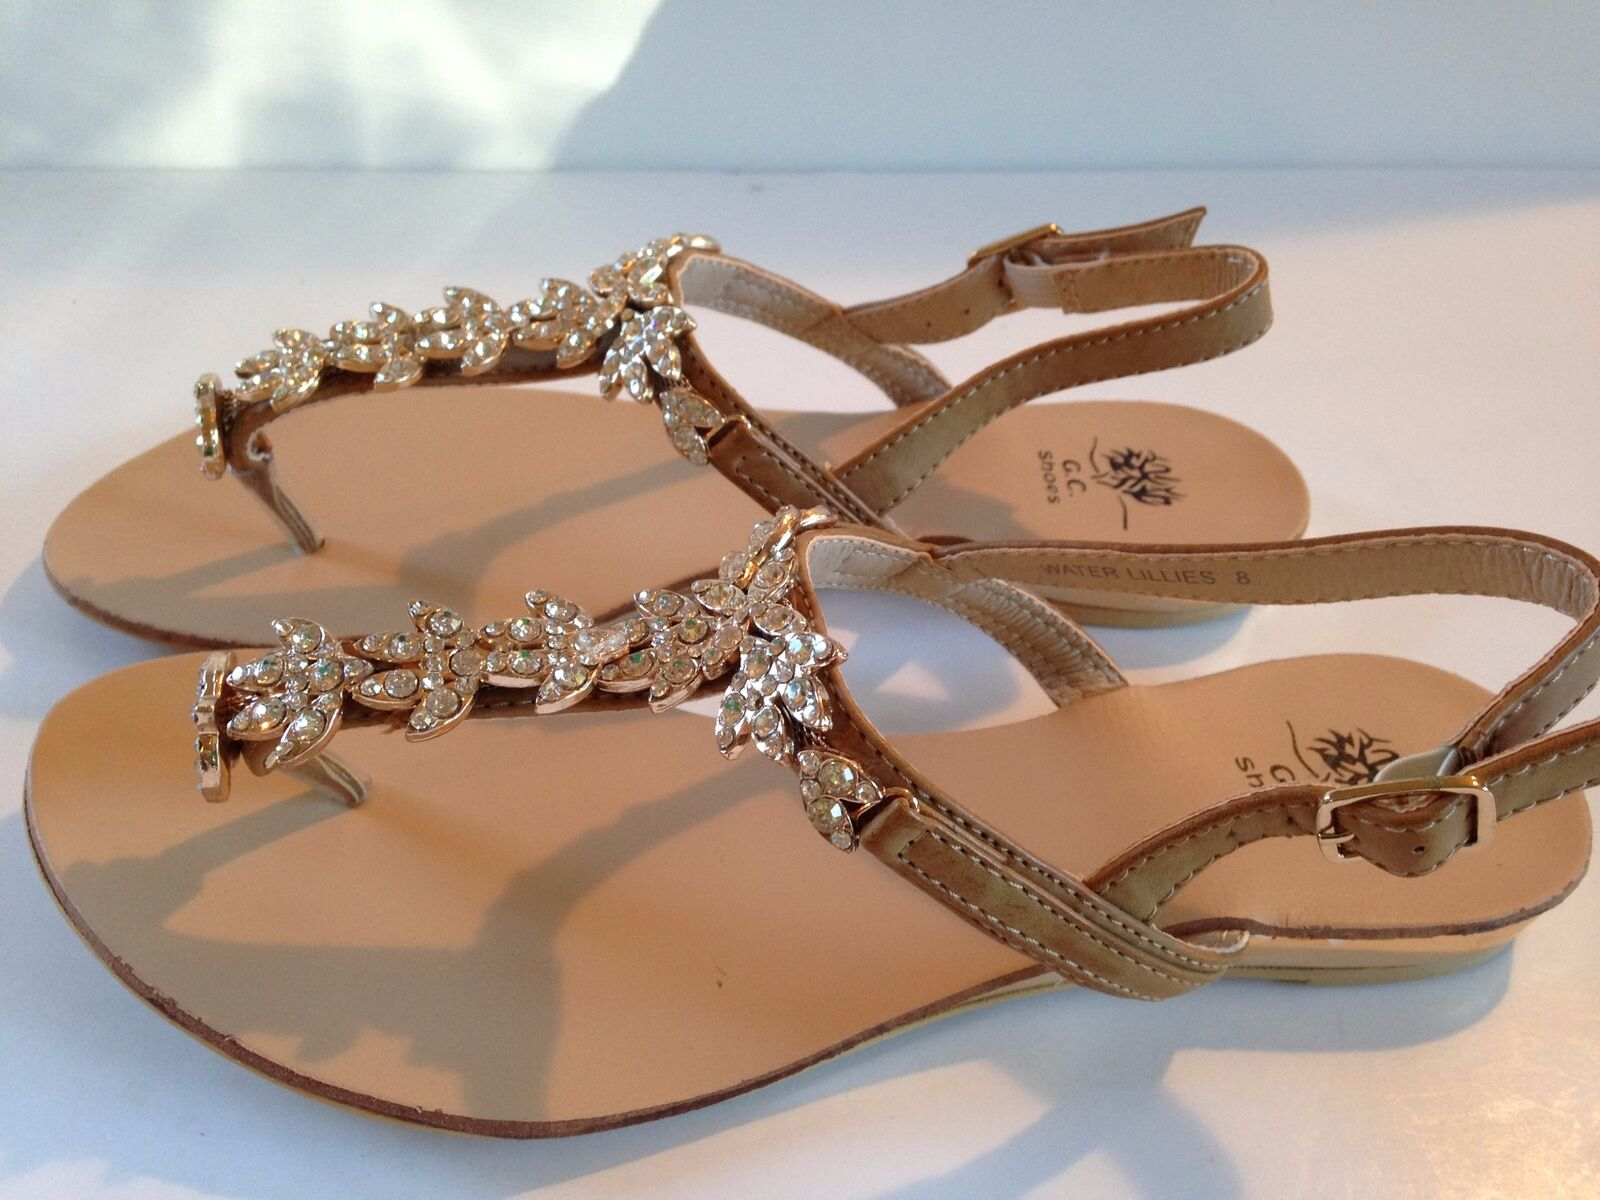 GC Shoes Sandals Waterlilies Sandals Shoes Tan Size 8M 1de9ea